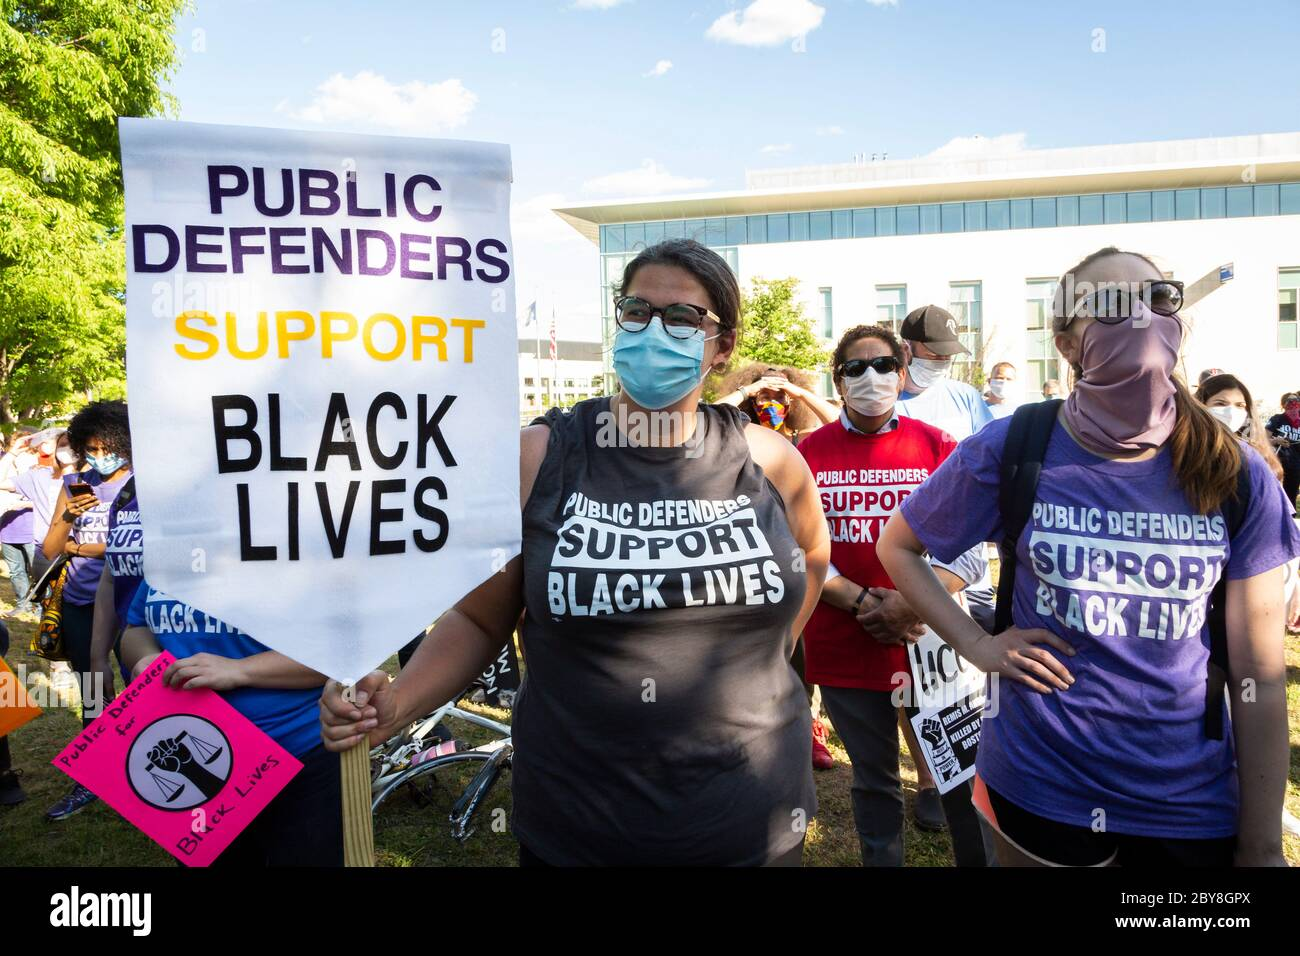 June 8, 2020. Roxbury, MA. Public defenders hold Black Lives Matter march in Roxbury Local public defenders rallied with members of the Black communit Stock Photo